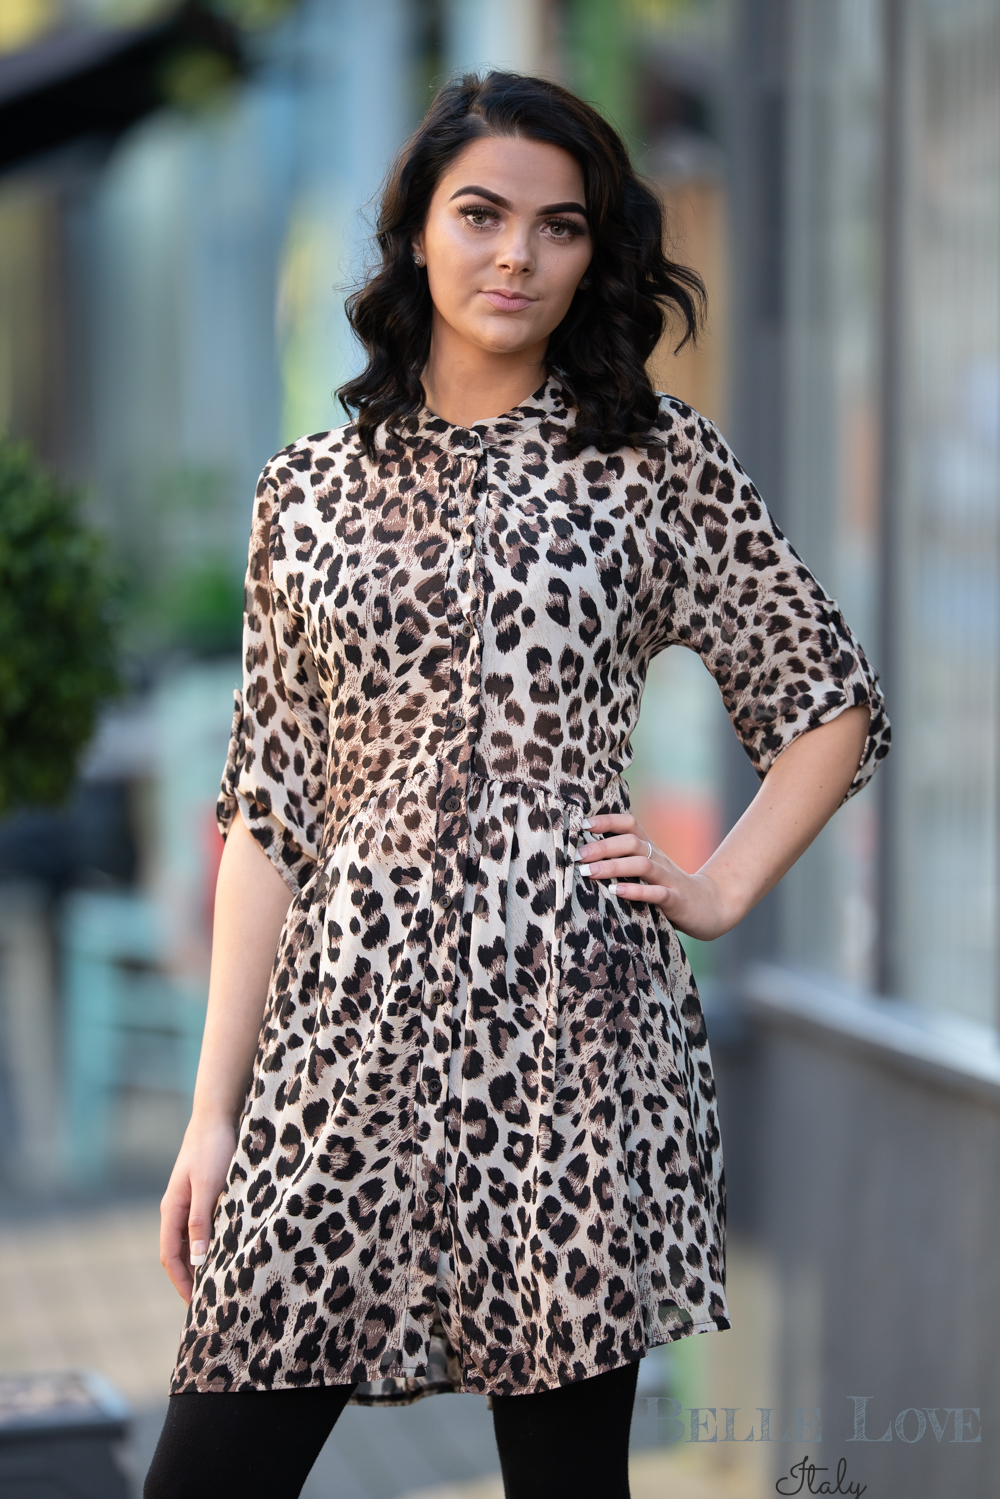 Belle Love Italy Leopard Print Smock Dress/Top